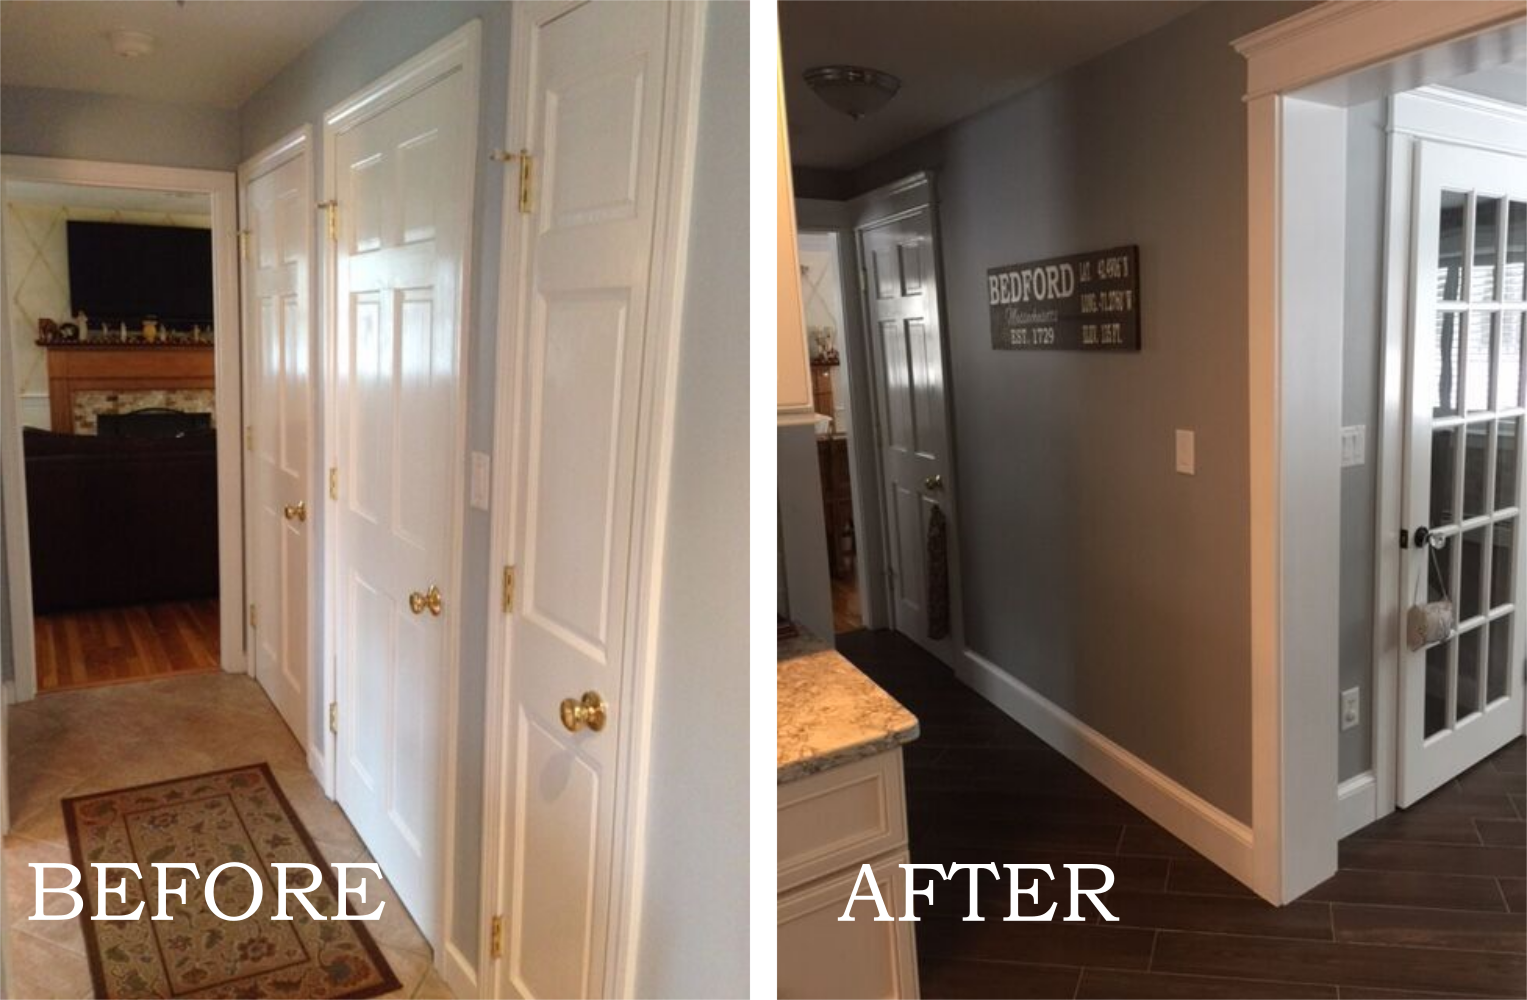 Removing a series of doors in a hallway allowed Ashlee to make better use of the space and build a walk-in pantry and linen closet.